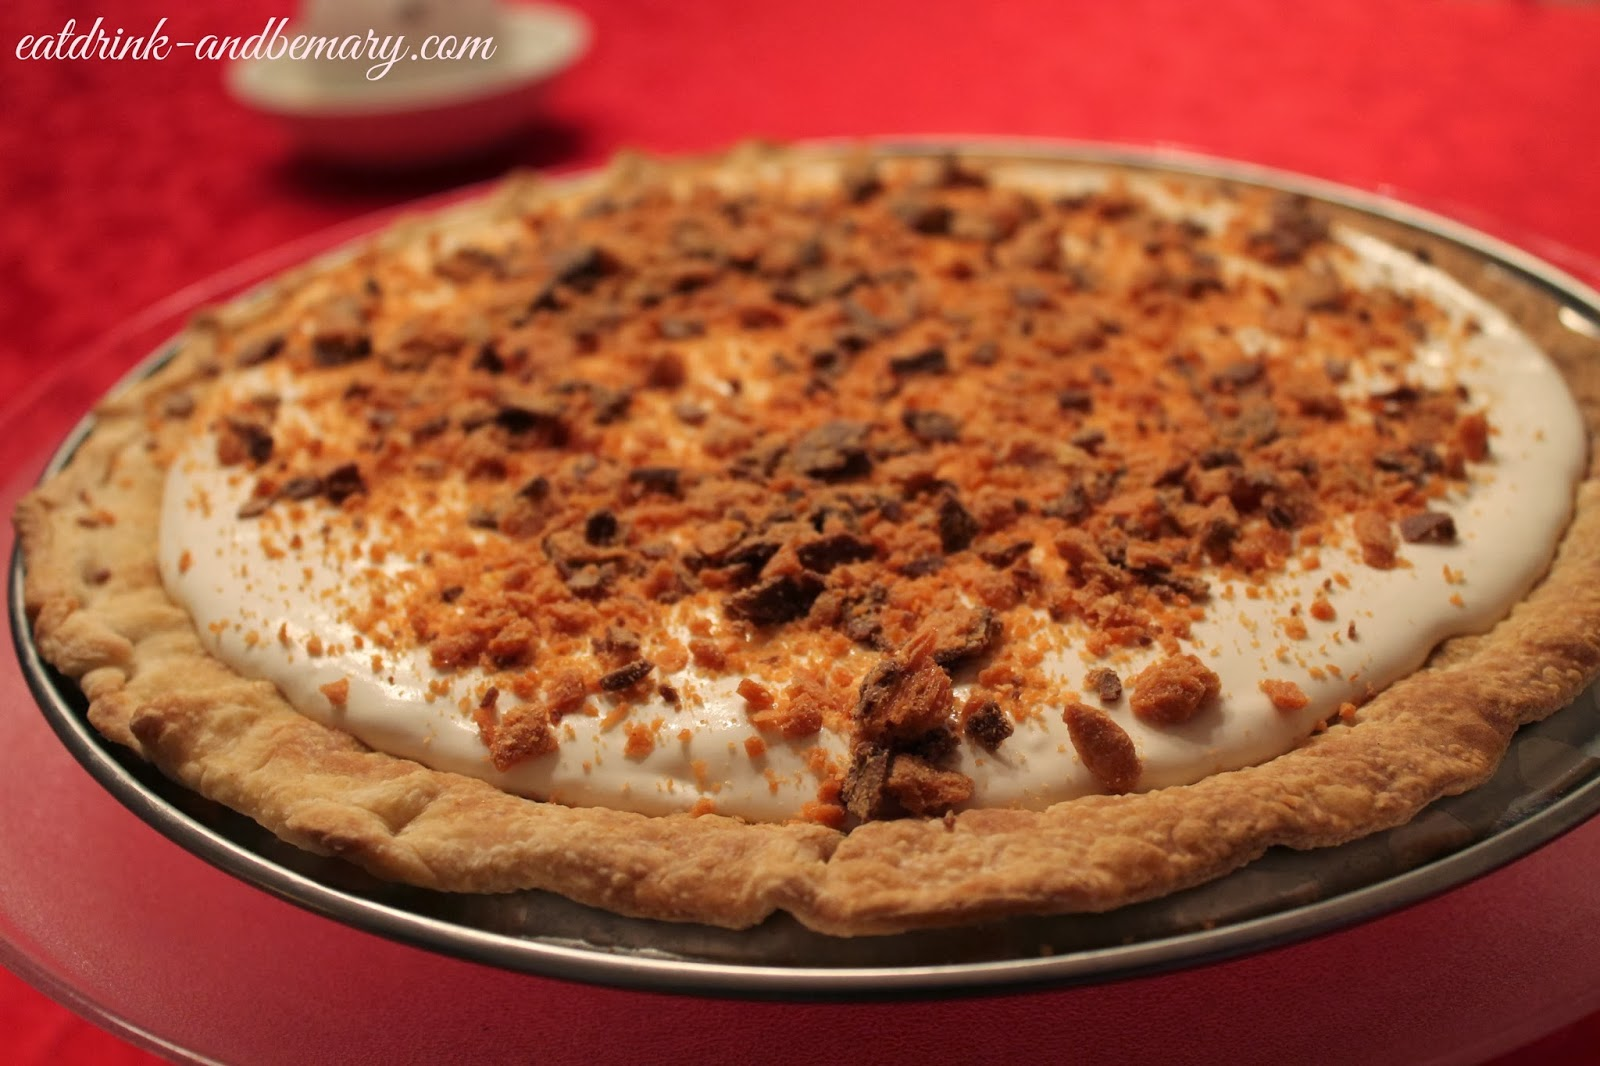 Peanut Butter Butterfinger Pie | Eat Drink & Be Mary